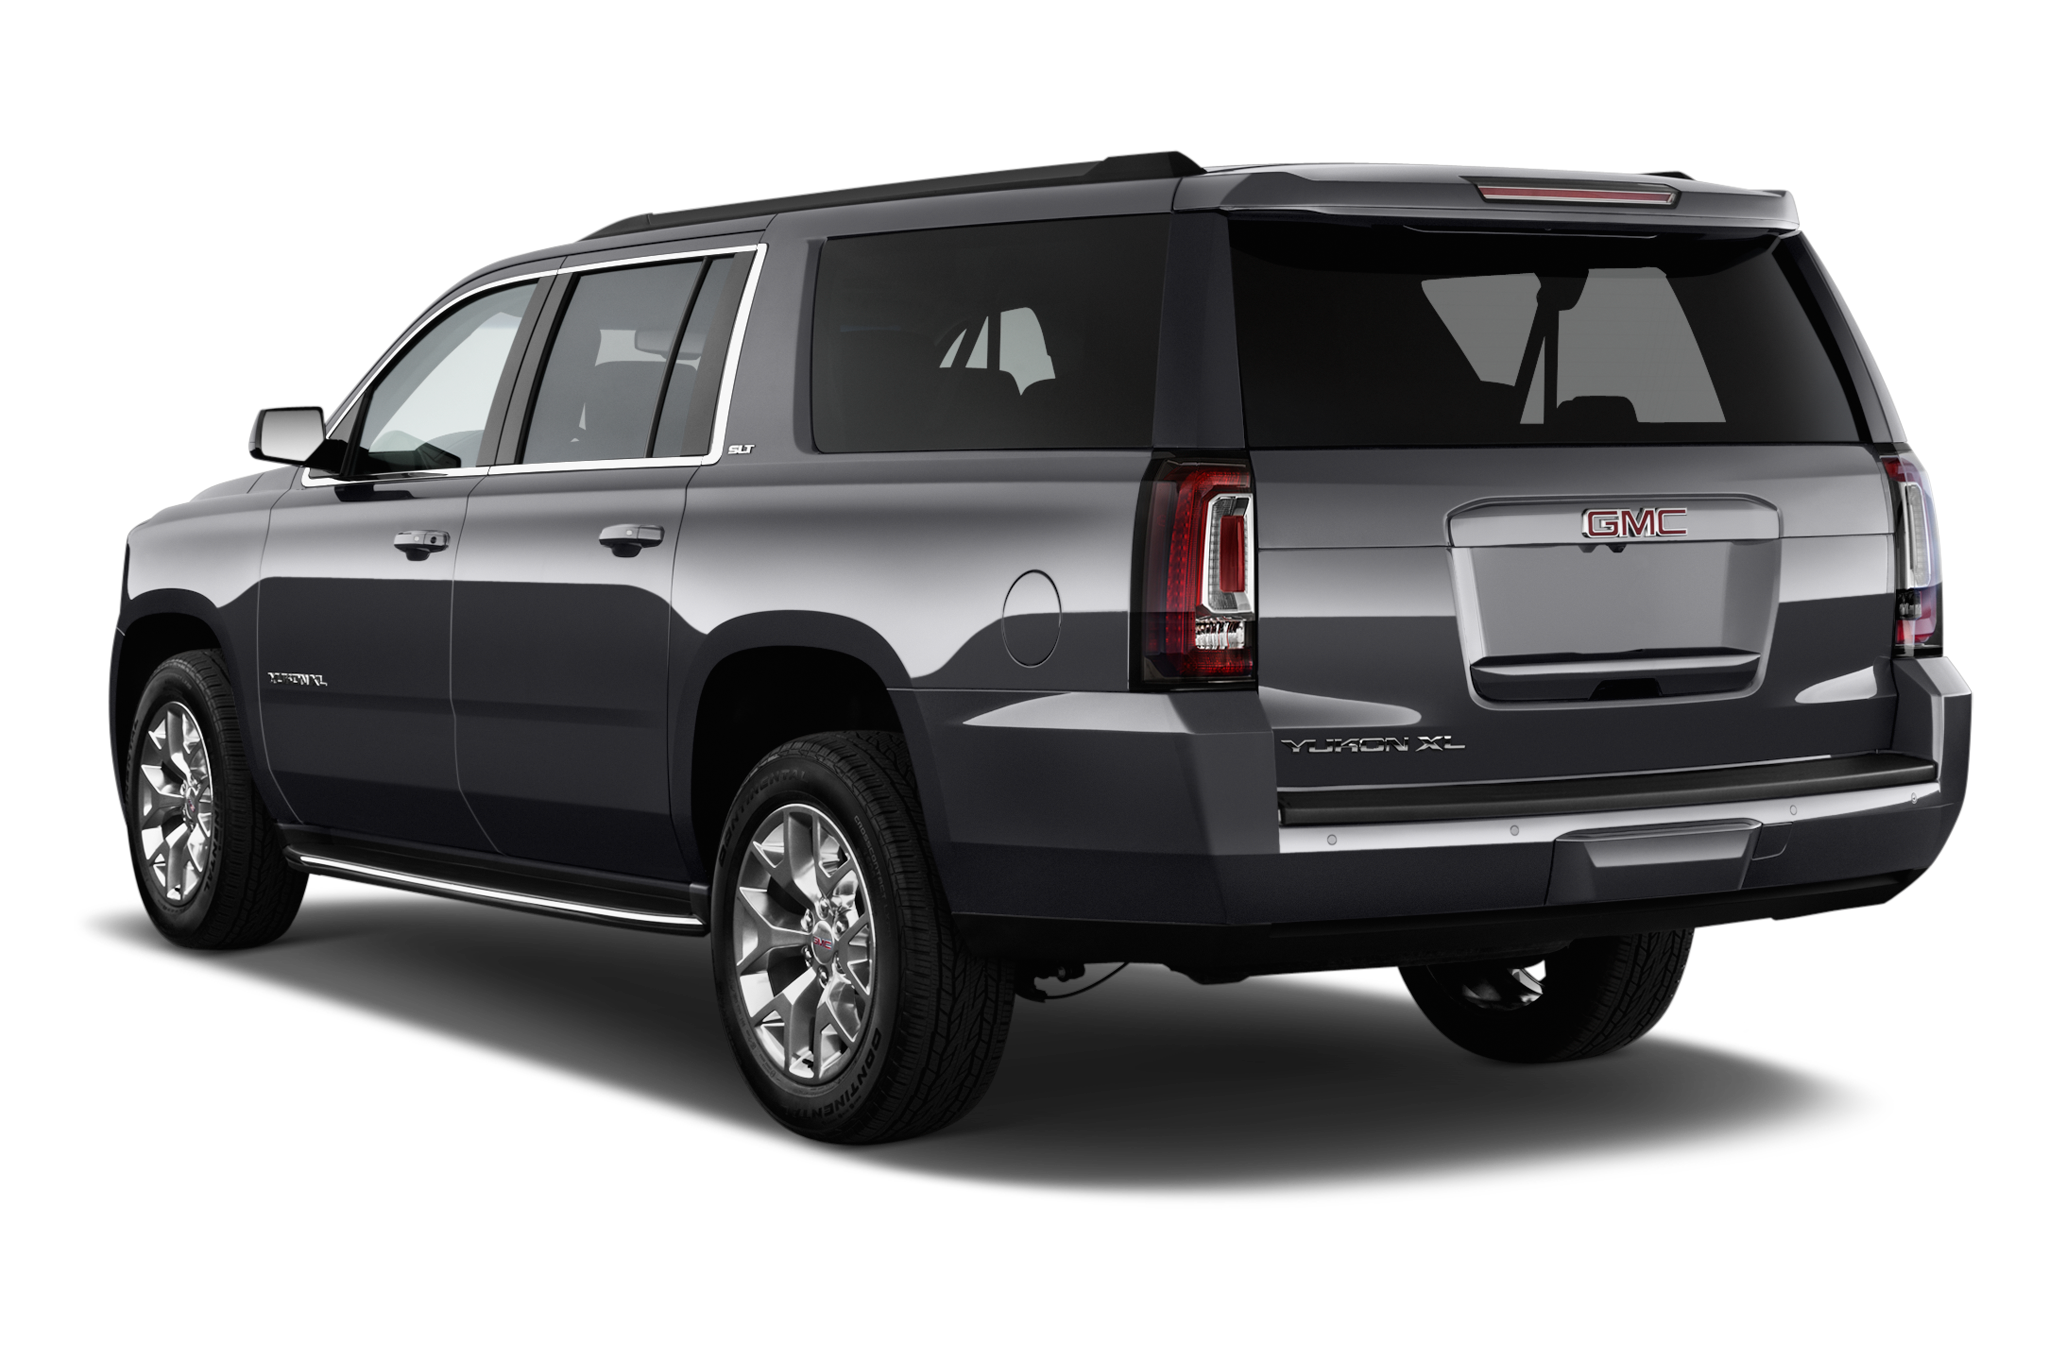 acadia image gmc news com conceptcarz models and information suv